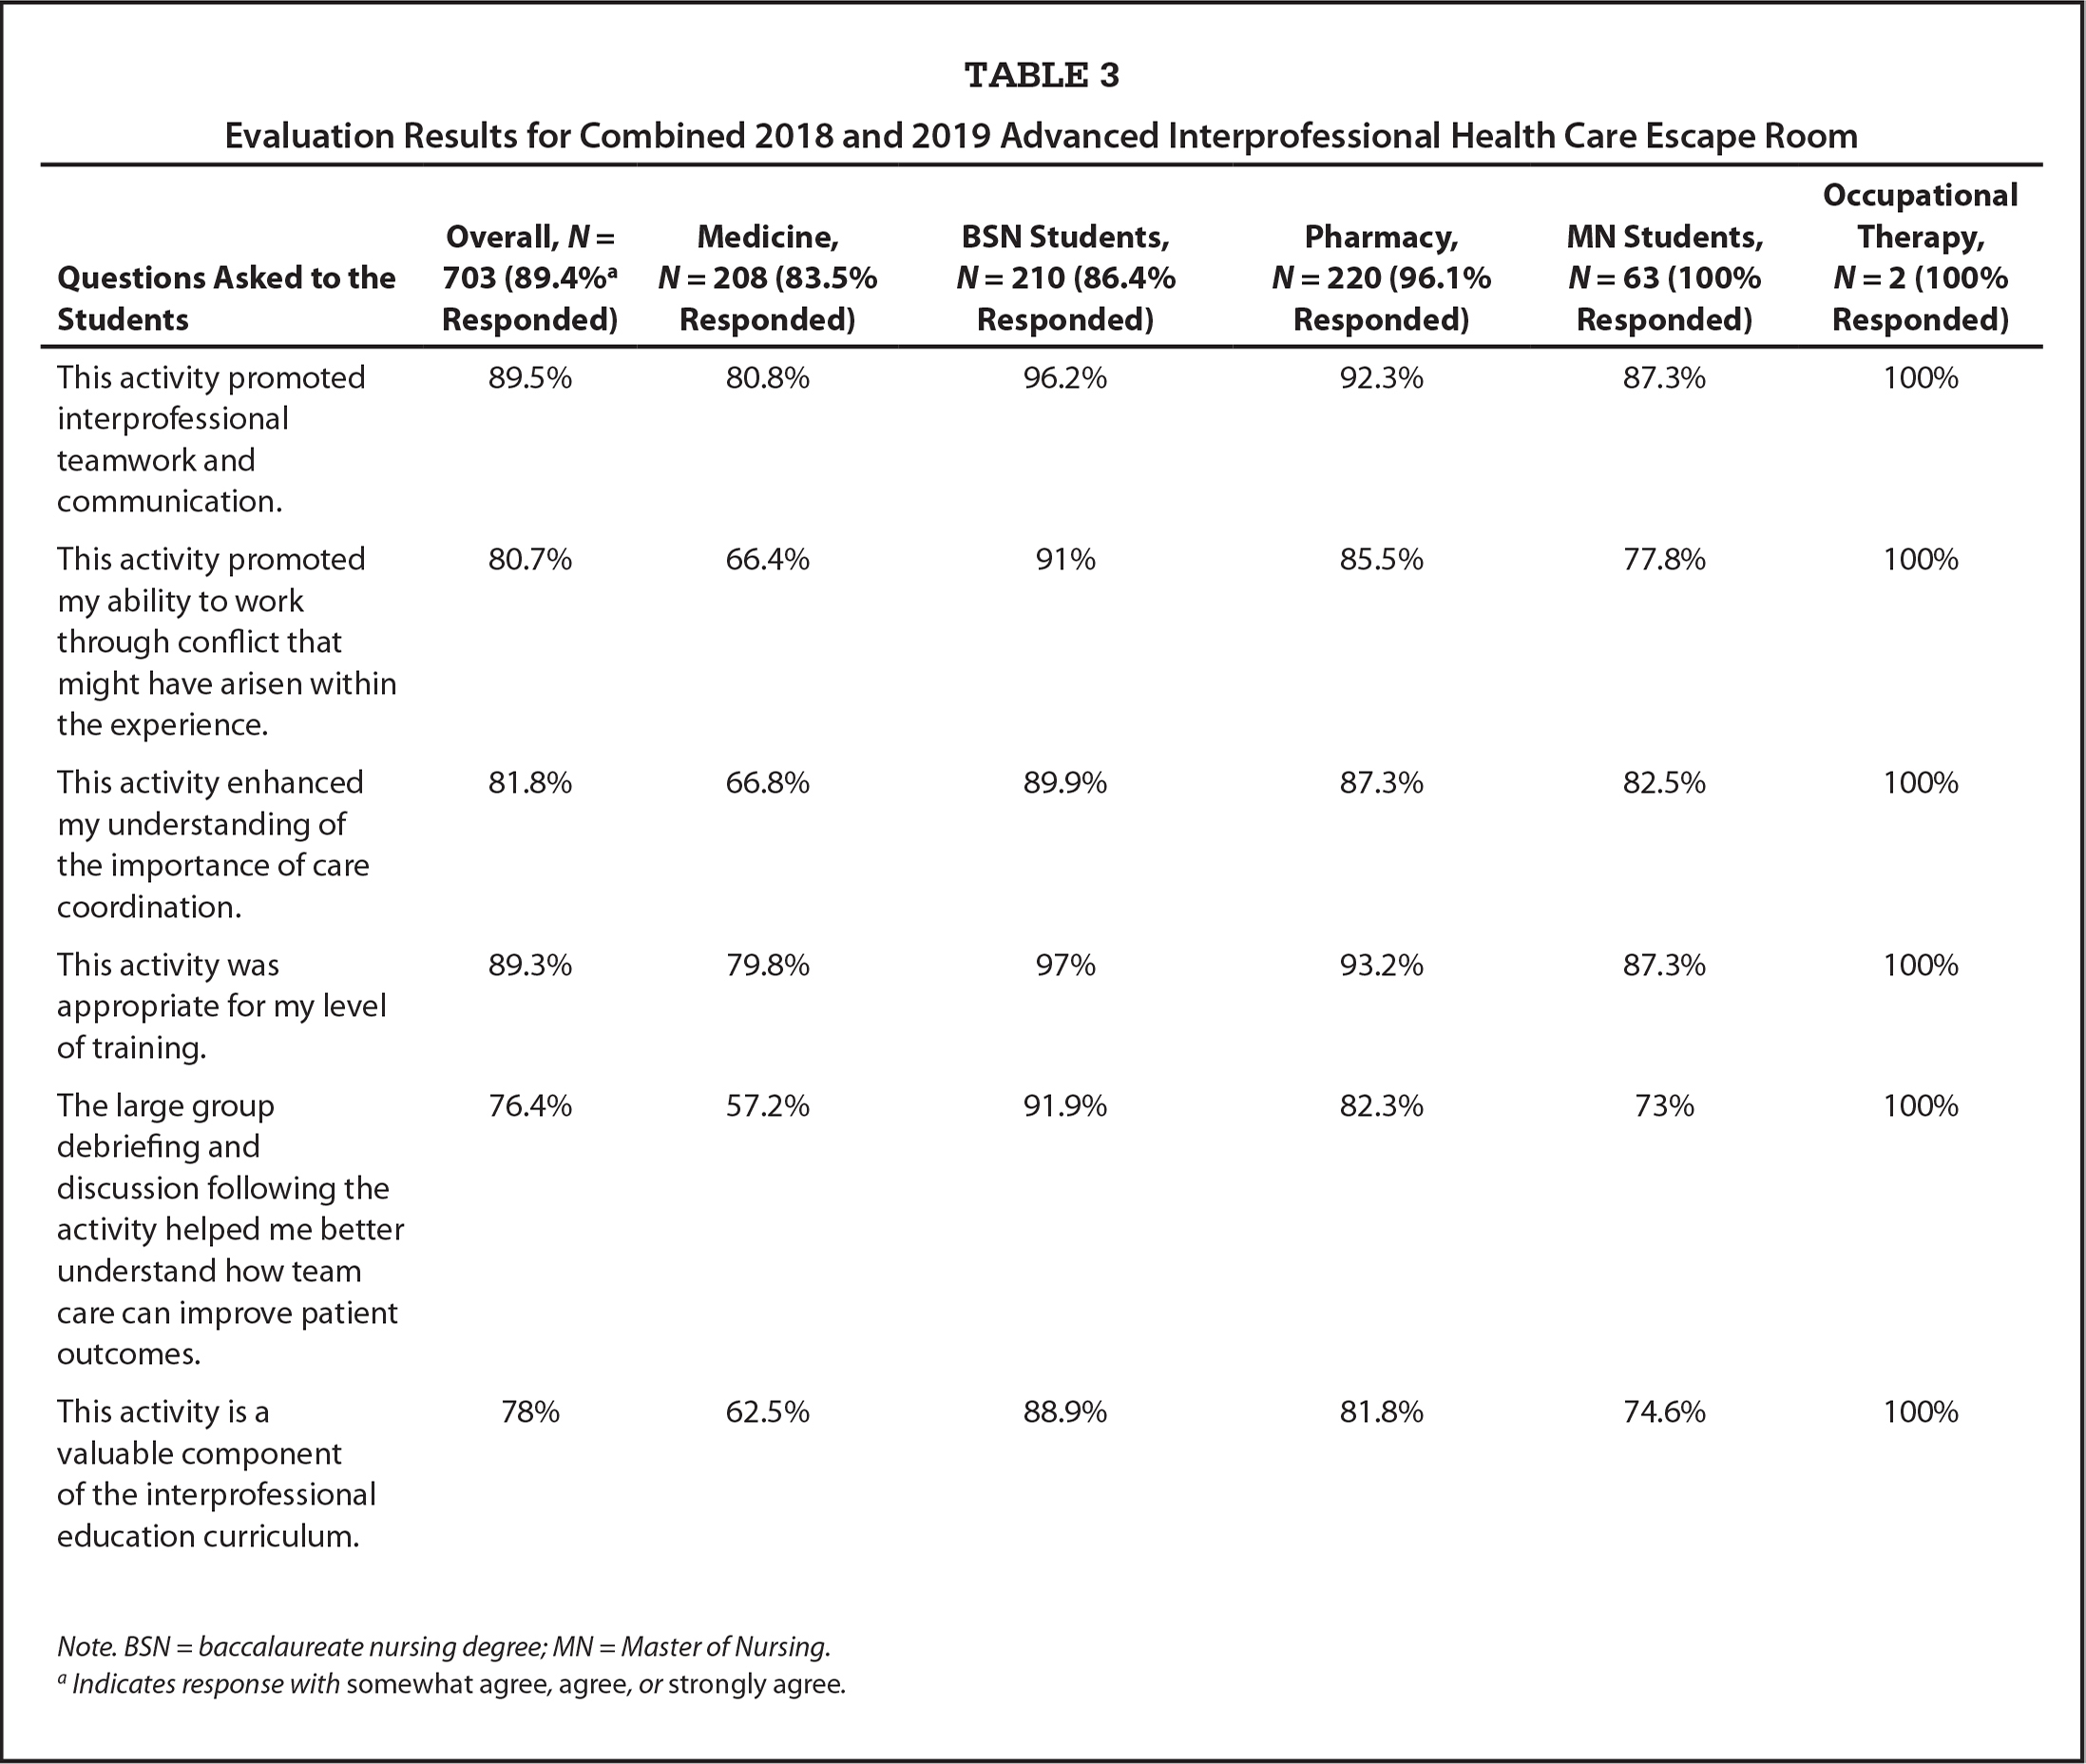 Evaluation Results for Combined 2018 and 2019 Advanced Interprofessional Health Care Escape Room